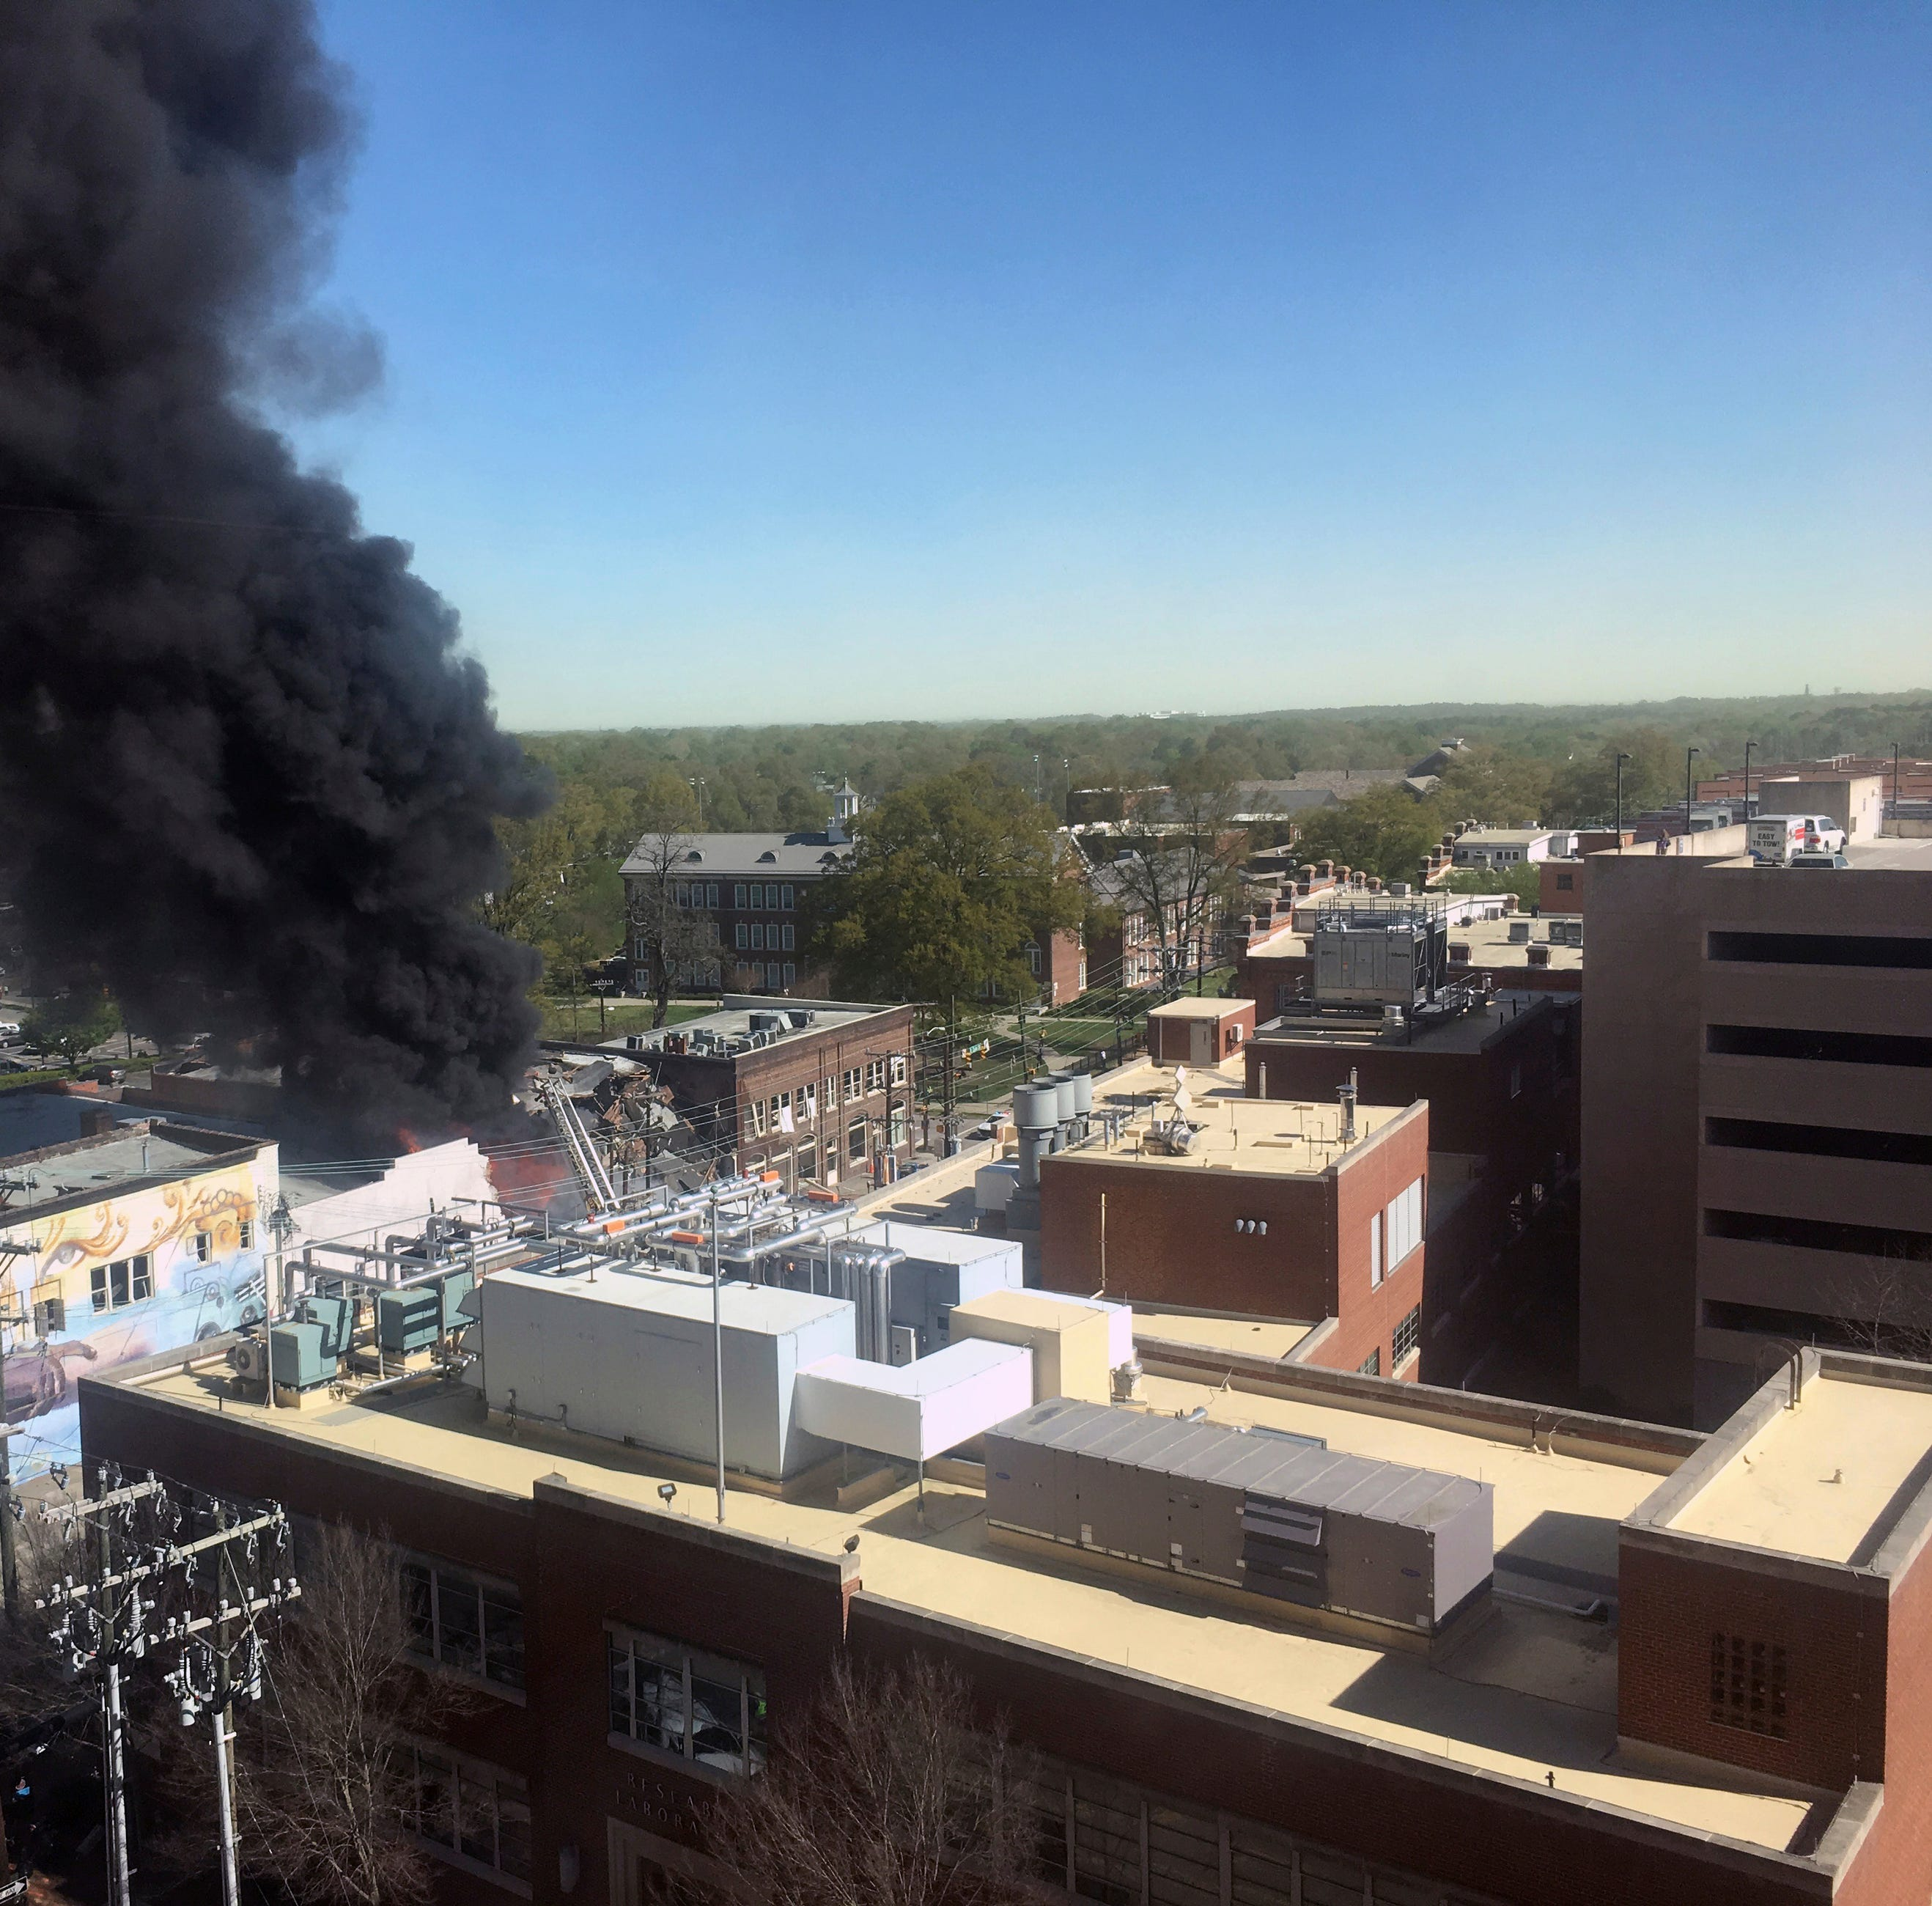 1 person killed, 17 injured in Durham, North Carolina, building explosion